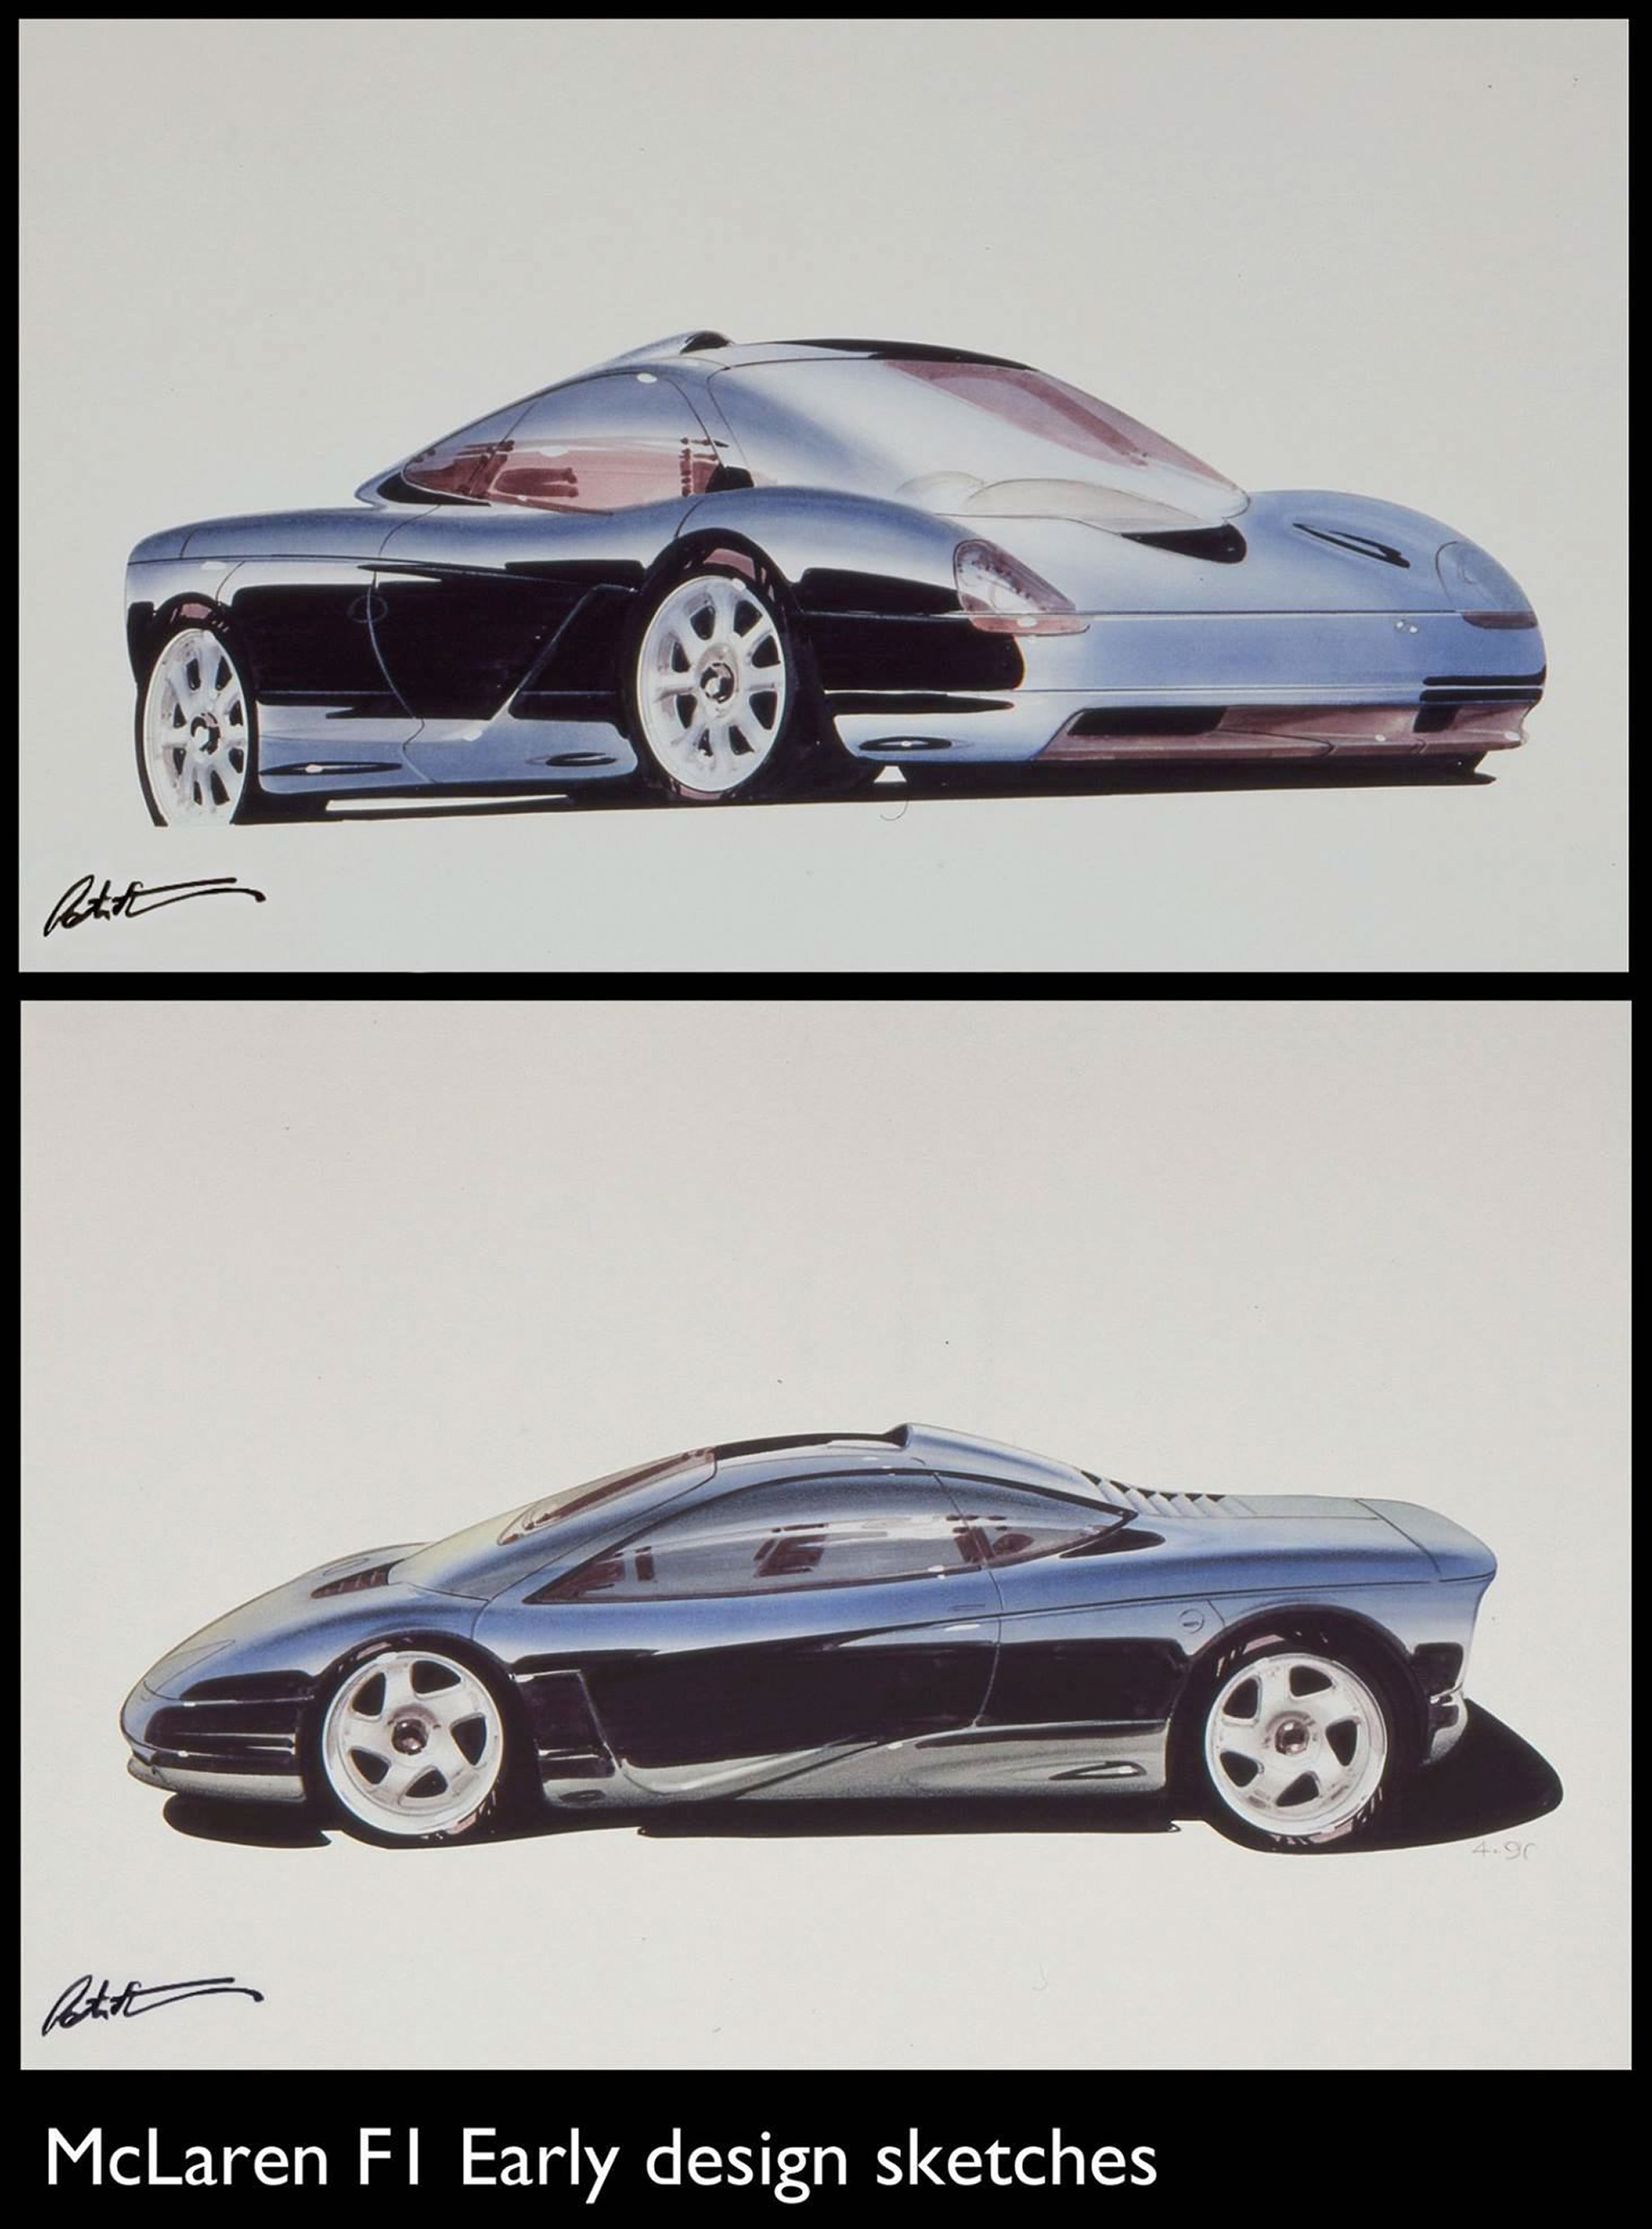 McLaren F1 - design sketch by Peters Stevens